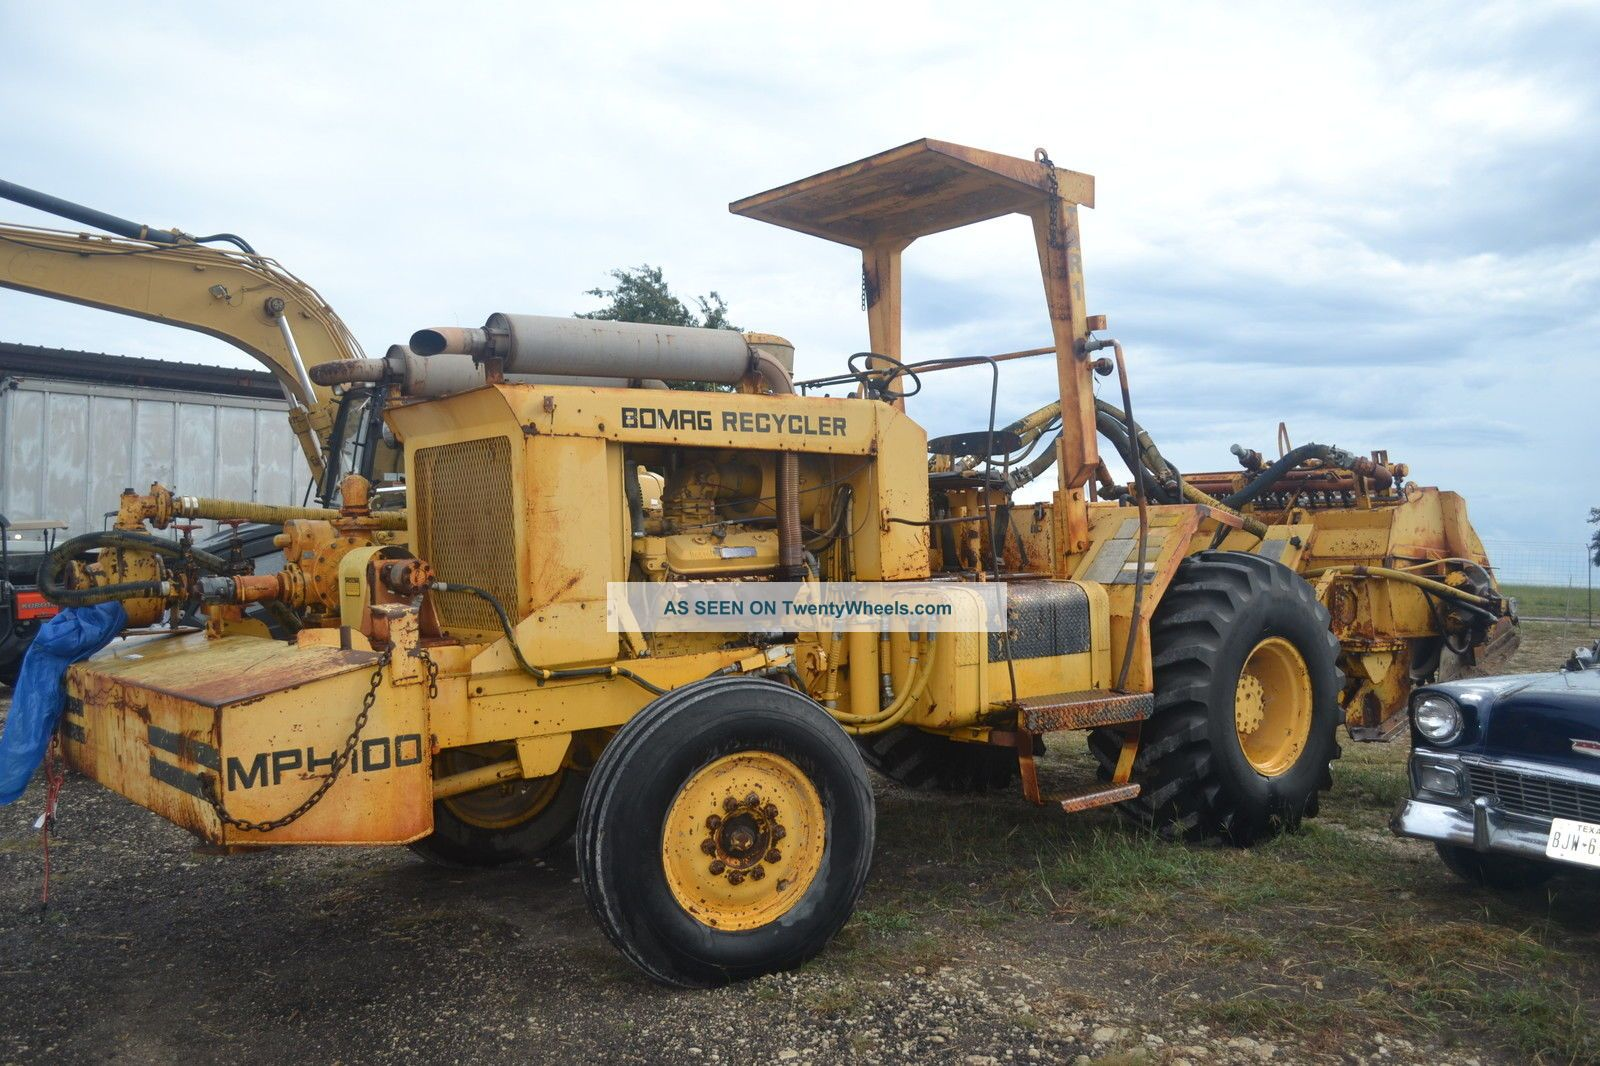 Bomag recycler